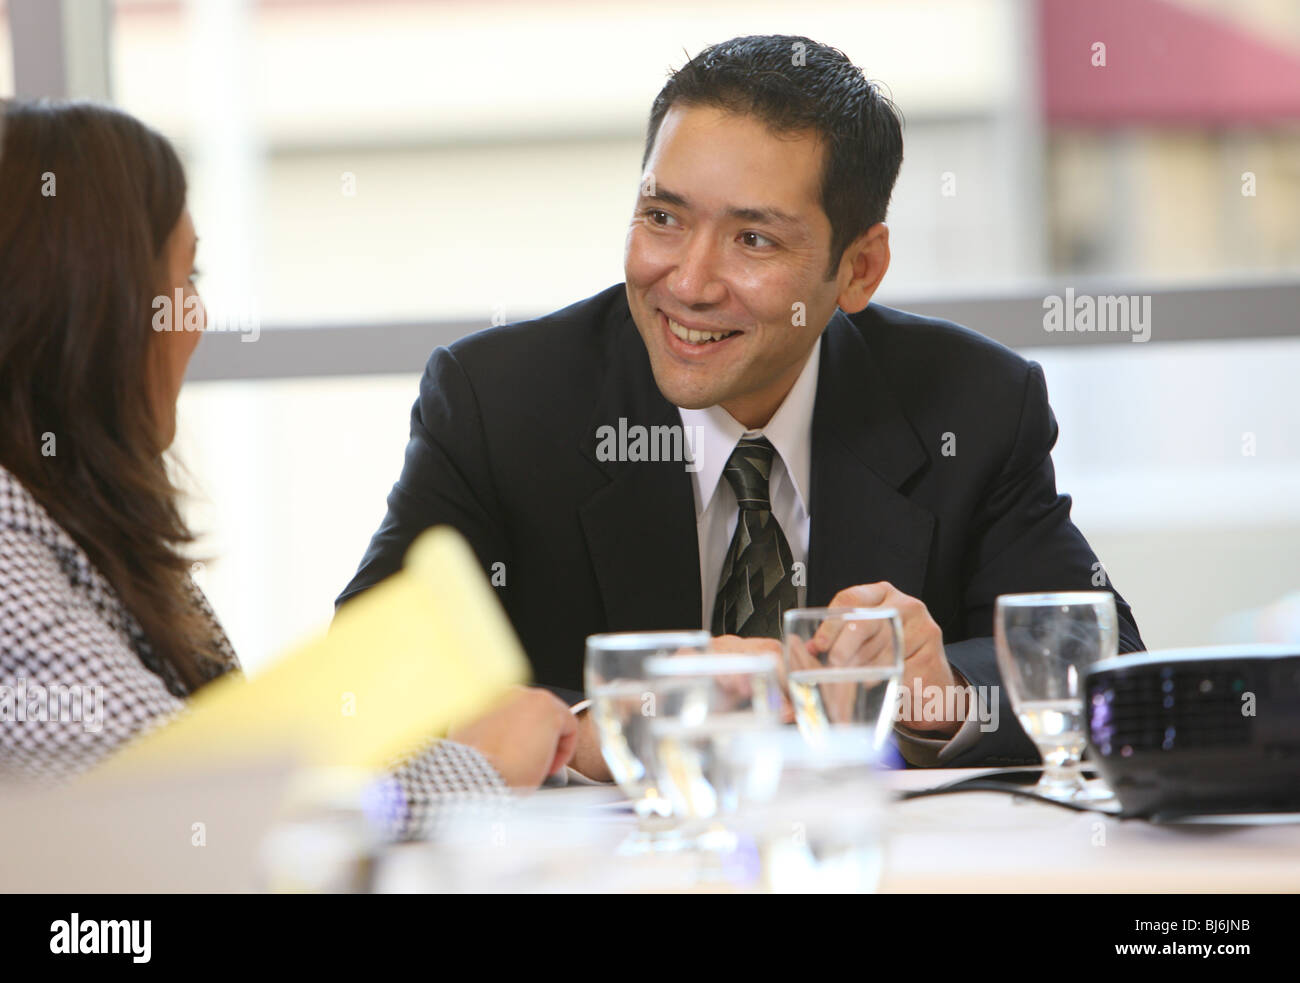 Business people in board room meeting - Stock Image